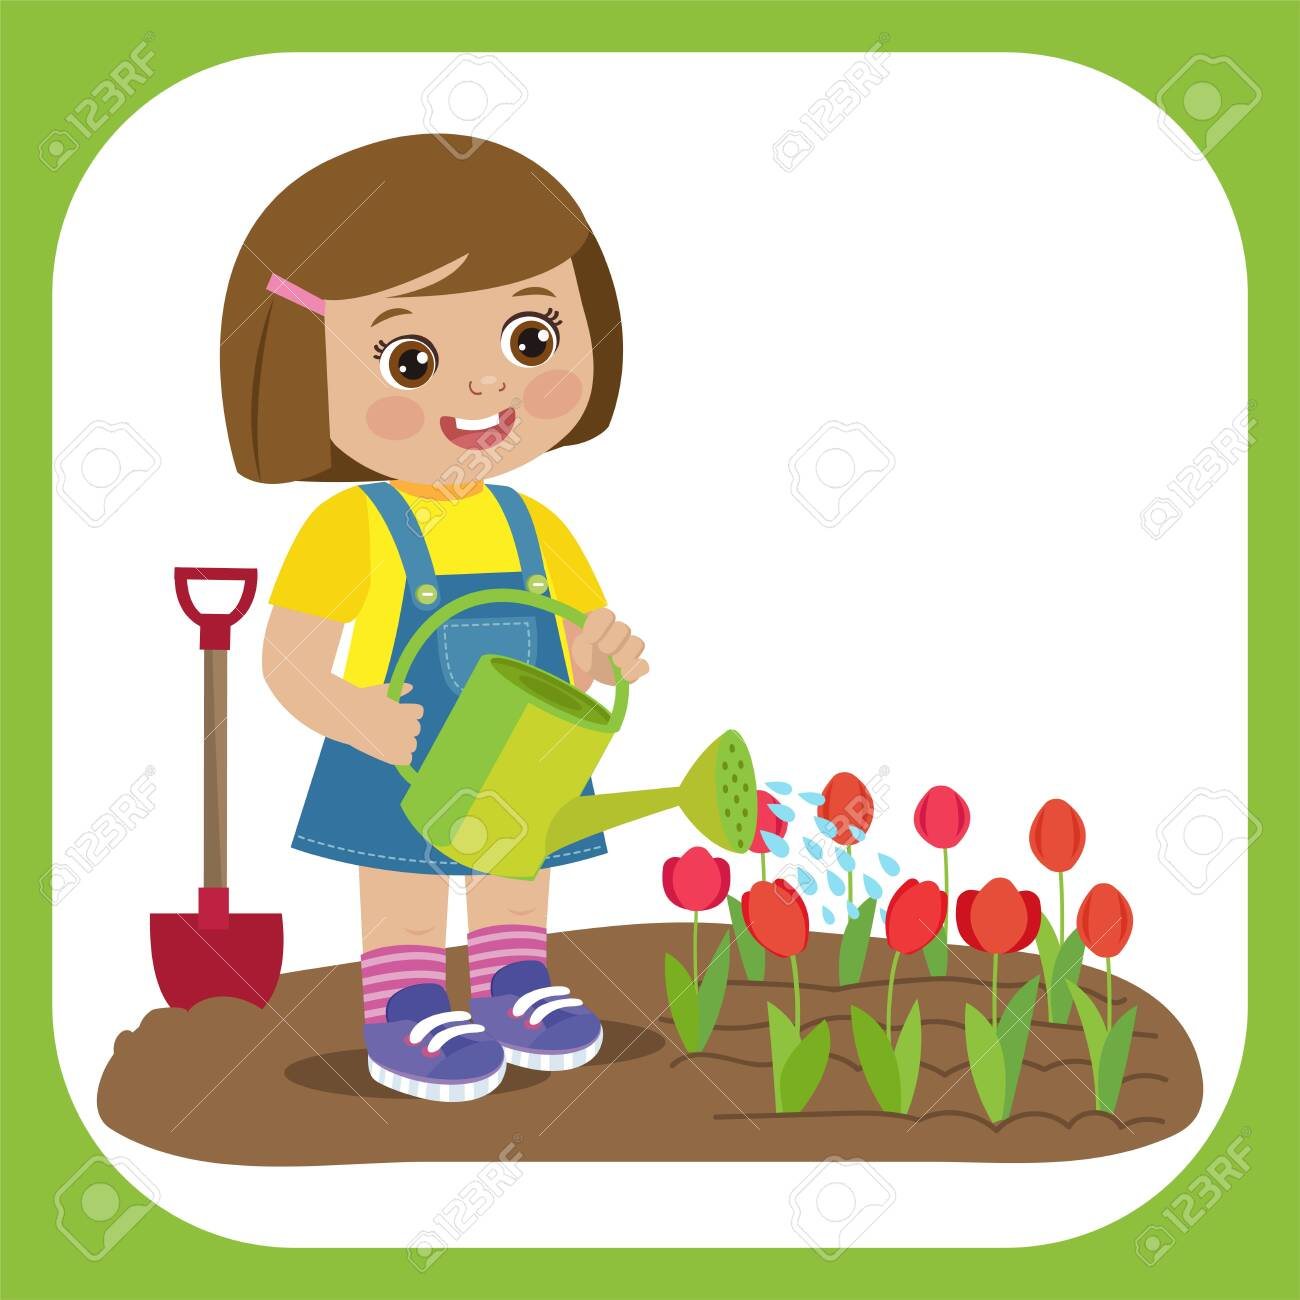 Cute Cartoon Girl With Watering Can Working In Garden Young Royalty Free Cliparts Vectors And Stock Illustration Image 124557609